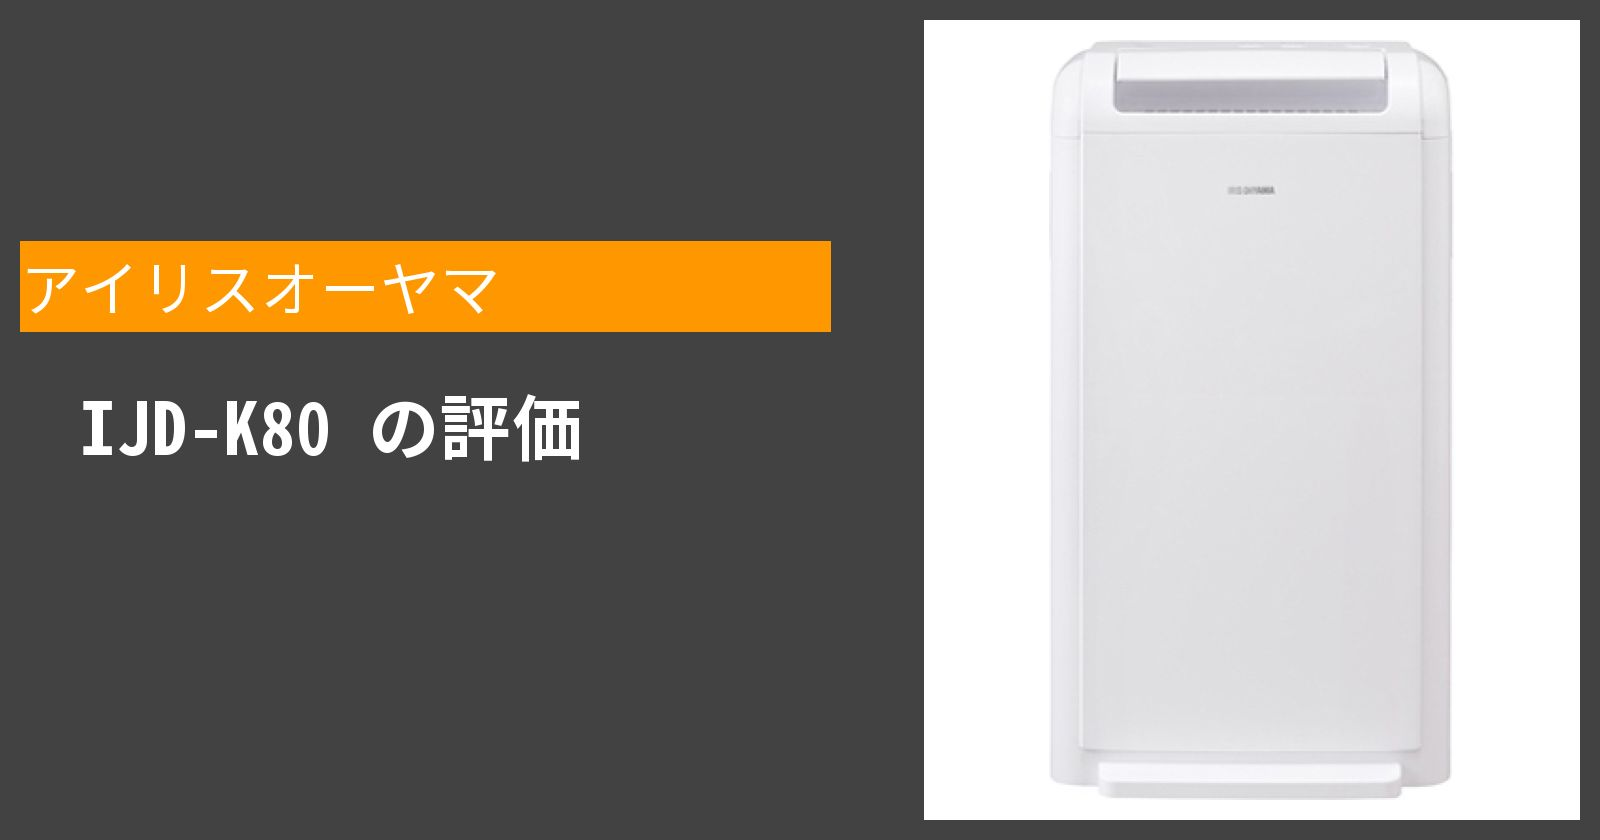 IJD-K80を徹底評価